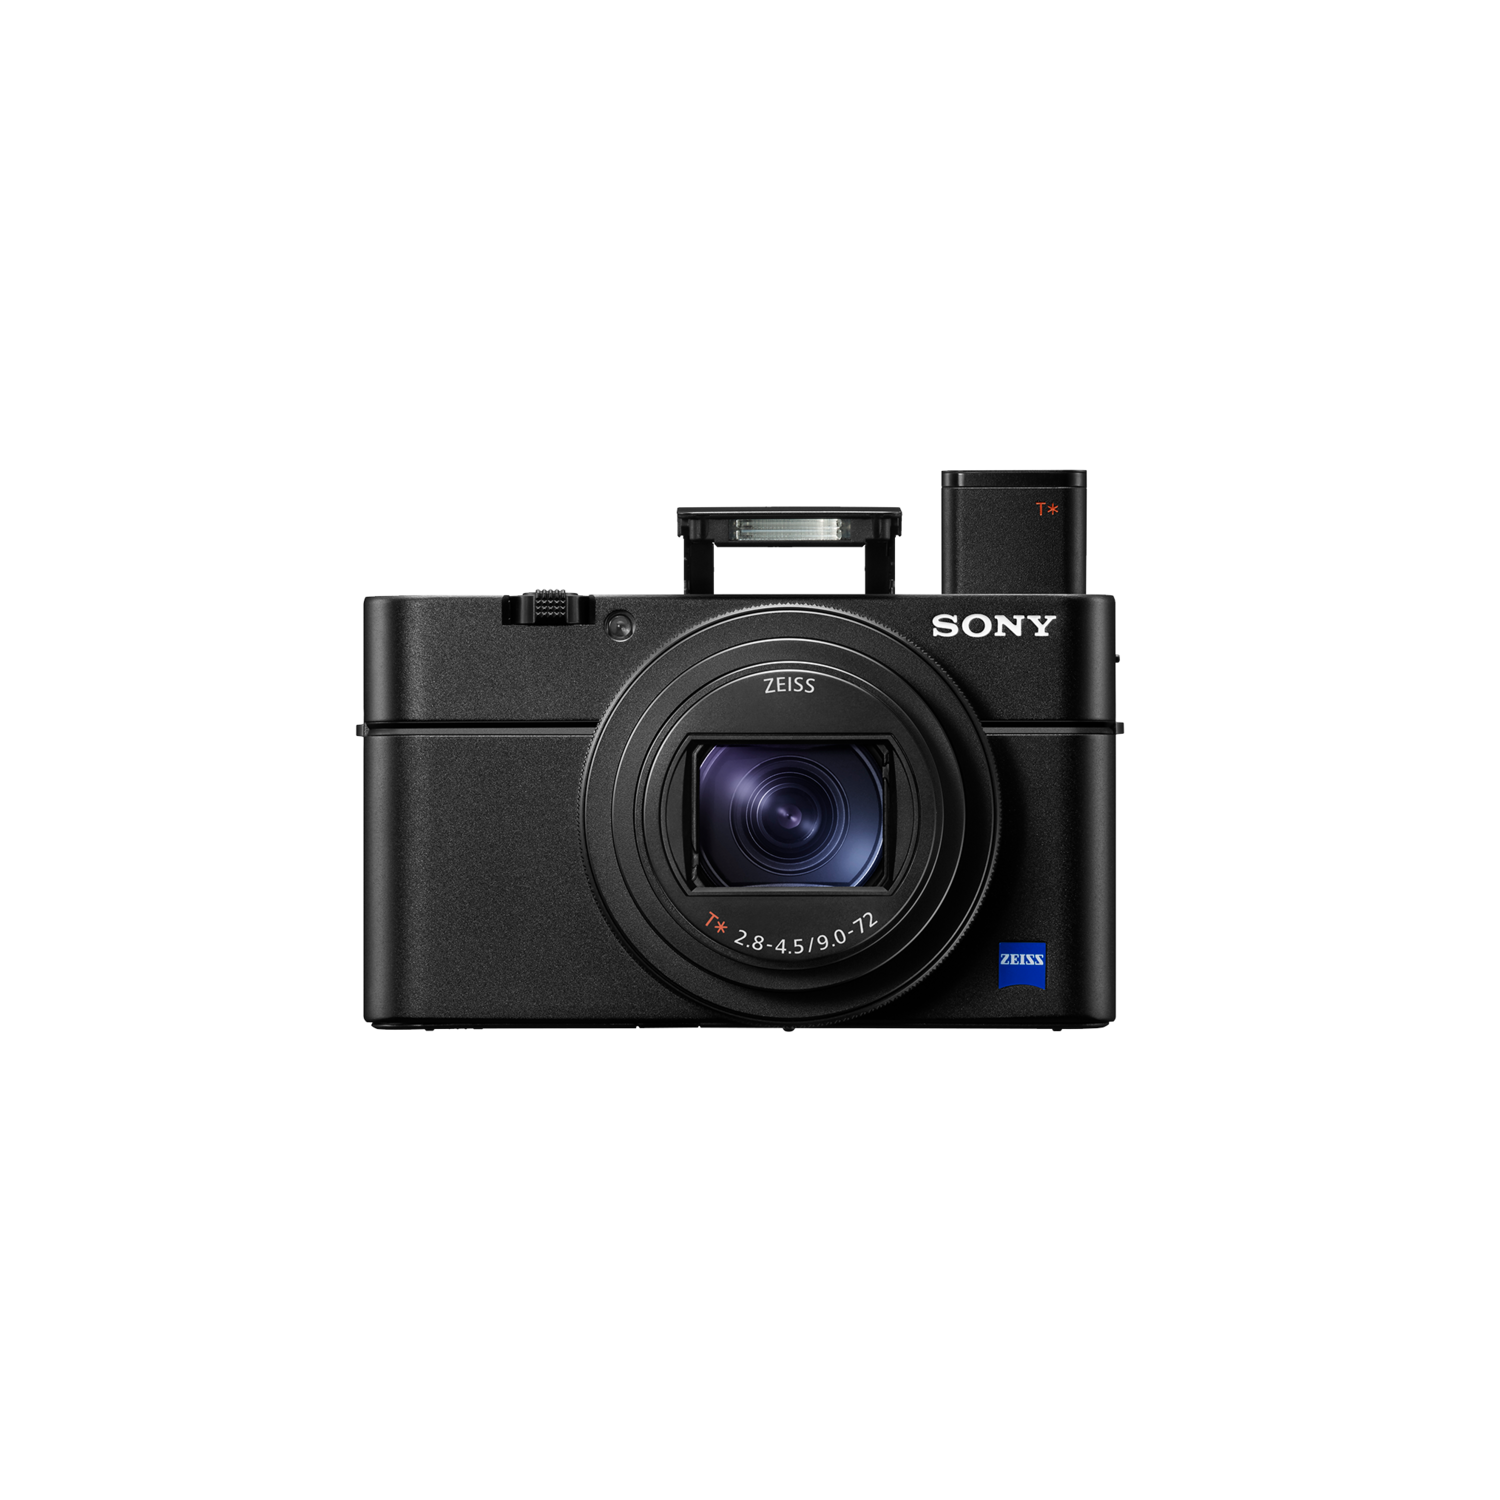 RX100 VII Ultra Fast Broad Zoom Camera with Real-time Tracking and Eye AF, , product-image